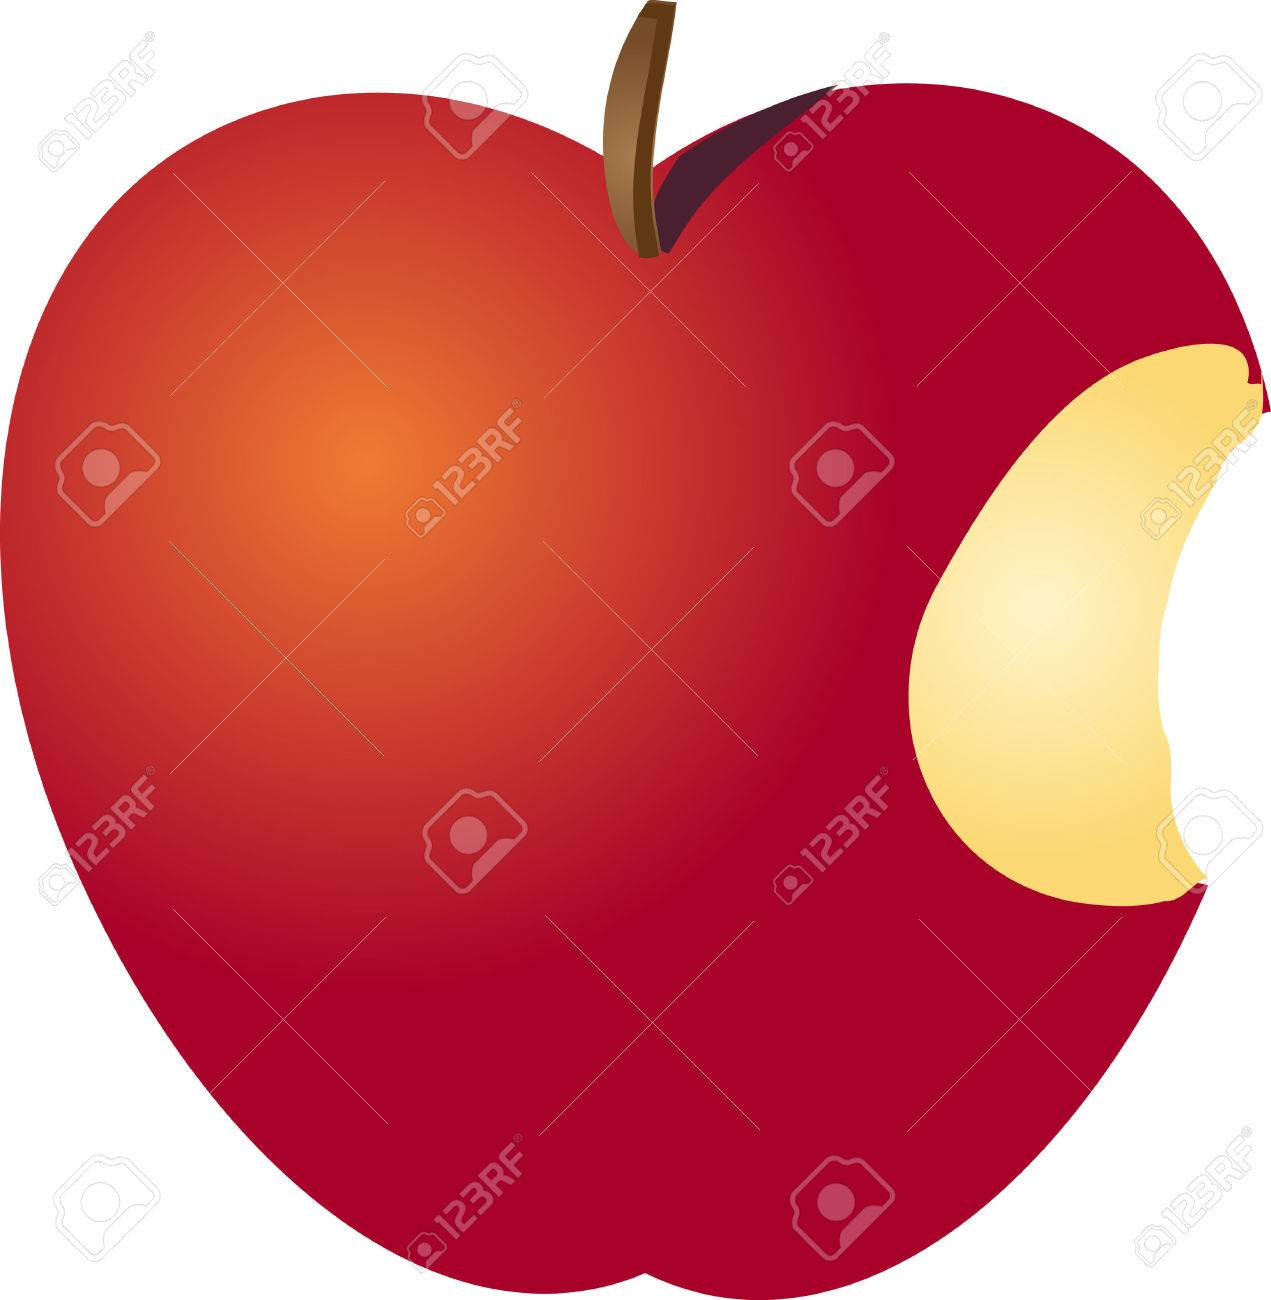 Eaten Red, Apple With A Bite Isometric Illustration Stock Photo ...